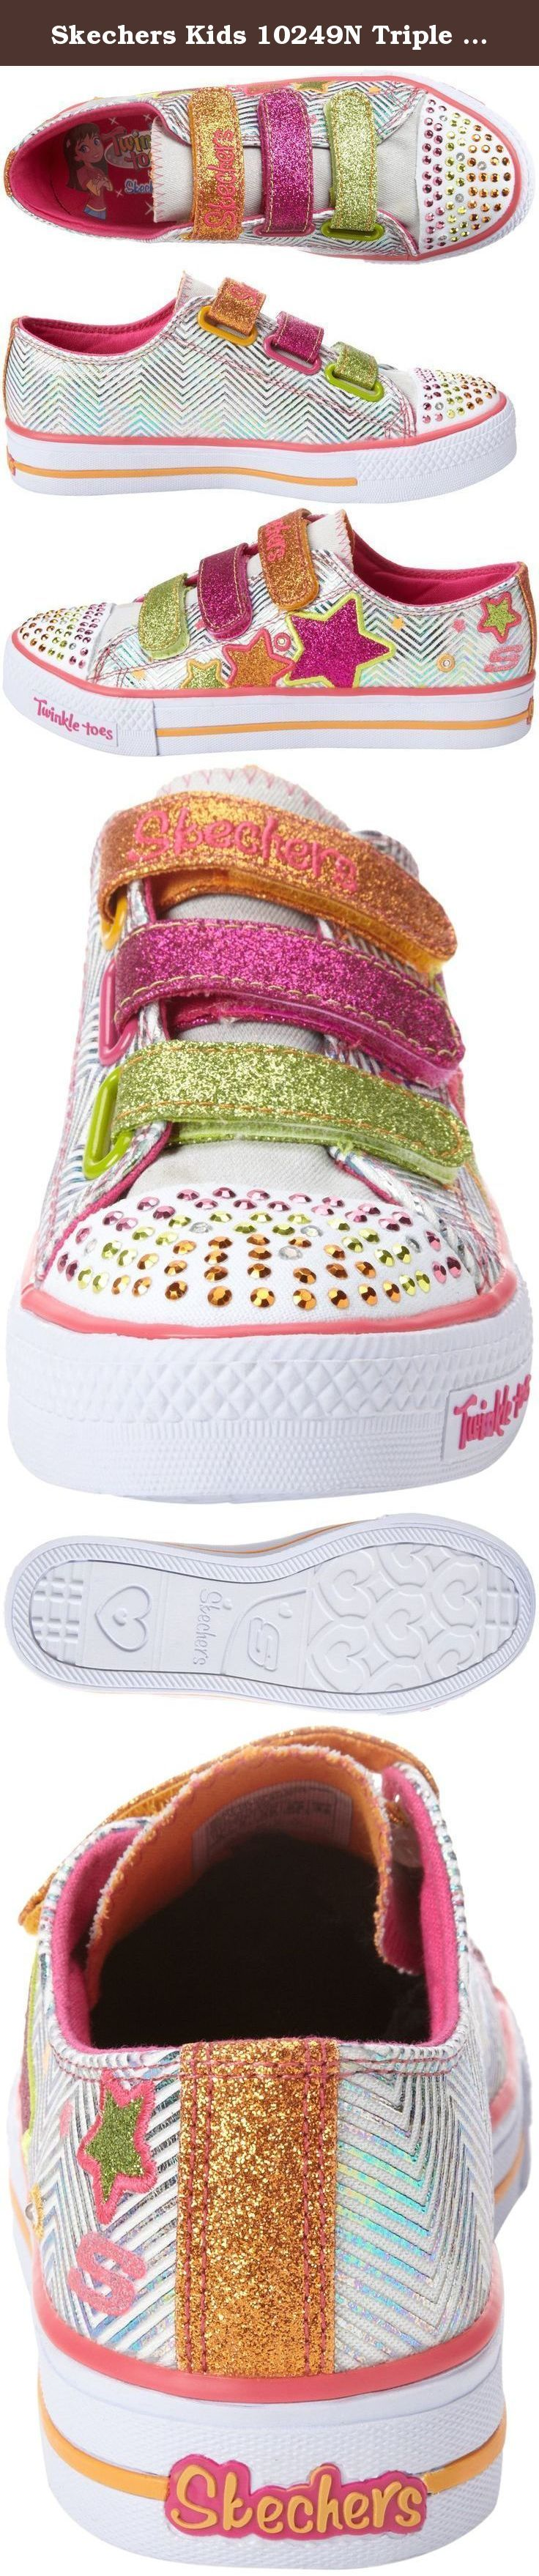 Skechers Kids 10249N Triple Up and Light-Up Sneaker (Toddler/Little Kid). SKECHERS Inf/Tod Shuffles - Triple Up Lights 10249N Metallic-printed textile upper with synthetic accents. Glittery detailing and SKECHERS logos add some extra style. Triple hook-and-loop closure for a secure and adjustable fit. Breathable textile lining and a cushioned textile footbed. Sequin-covered toe cap lights up with every step. Shock-absorbing midsole. Durable rubber outsole. Measurements: Weight: 6 oz…